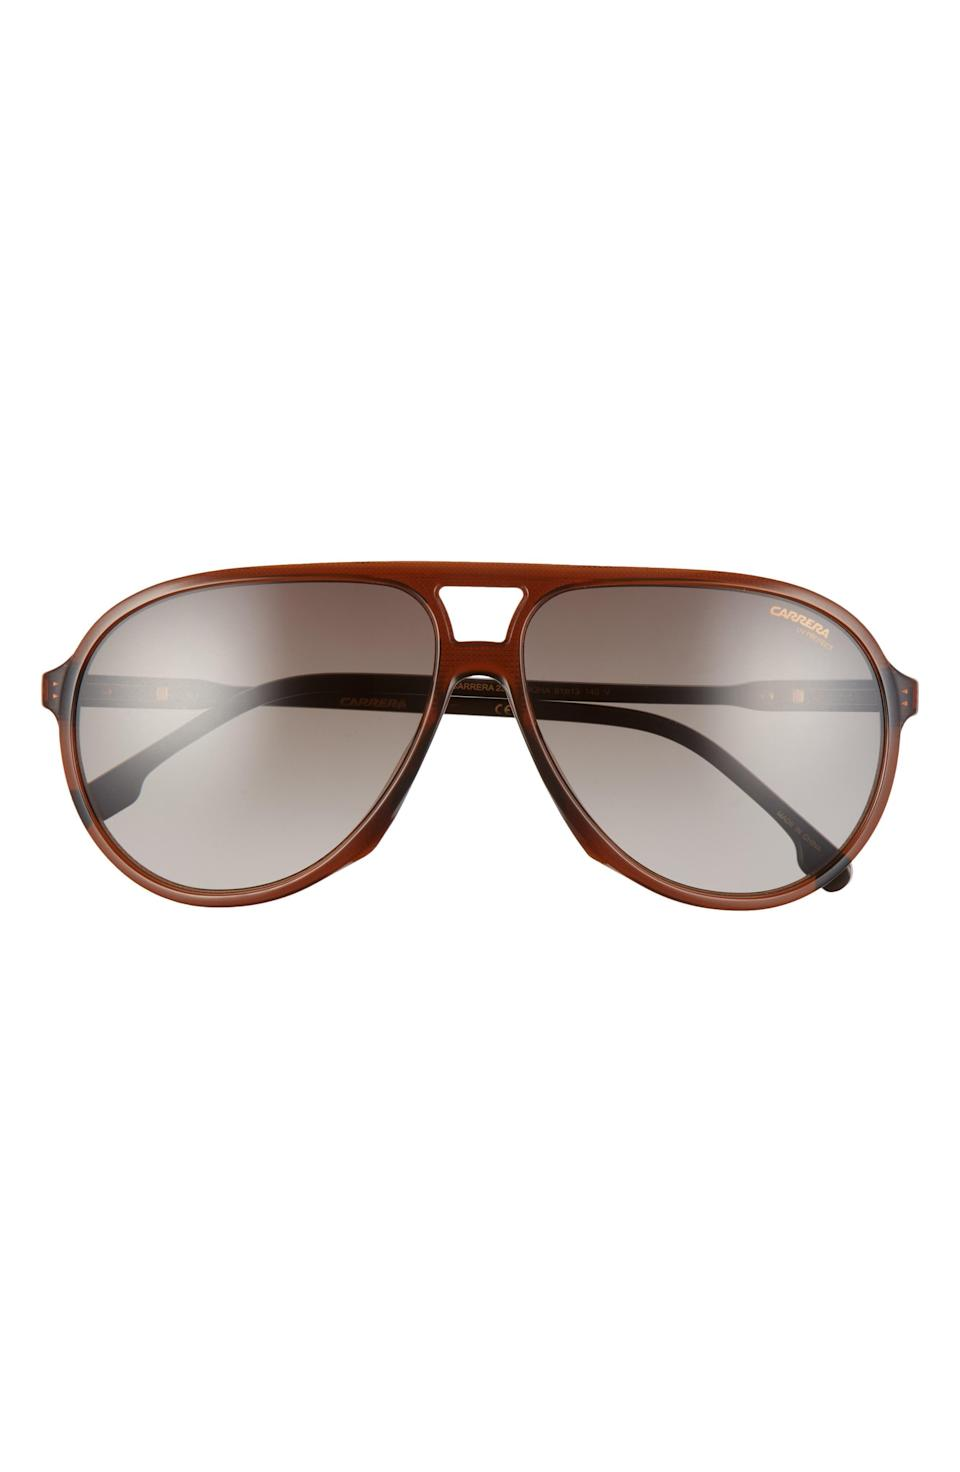 """<p><strong>CARRERA EYEWEAR</strong></p><p>nordstrom.com</p><p><strong>$91.80</strong></p><p><a href=""""https://go.redirectingat.com?id=74968X1596630&url=https%3A%2F%2Fwww.nordstrom.com%2Fs%2Fcarrera-eyewear-61mm-aviator-sunglasses%2F6114090&sref=https%3A%2F%2Fwww.esquire.com%2Fstyle%2Fg36535194%2Fnordstrom-mens-sale-half-yearly-spring-2021%2F"""" rel=""""nofollow noopener"""" target=""""_blank"""" data-ylk=""""slk:Shop Now"""" class=""""link rapid-noclick-resp"""">Shop Now</a></p><p>Meet your new favorite retro-inspired sunglasses, courtesy of Carrera. </p>"""